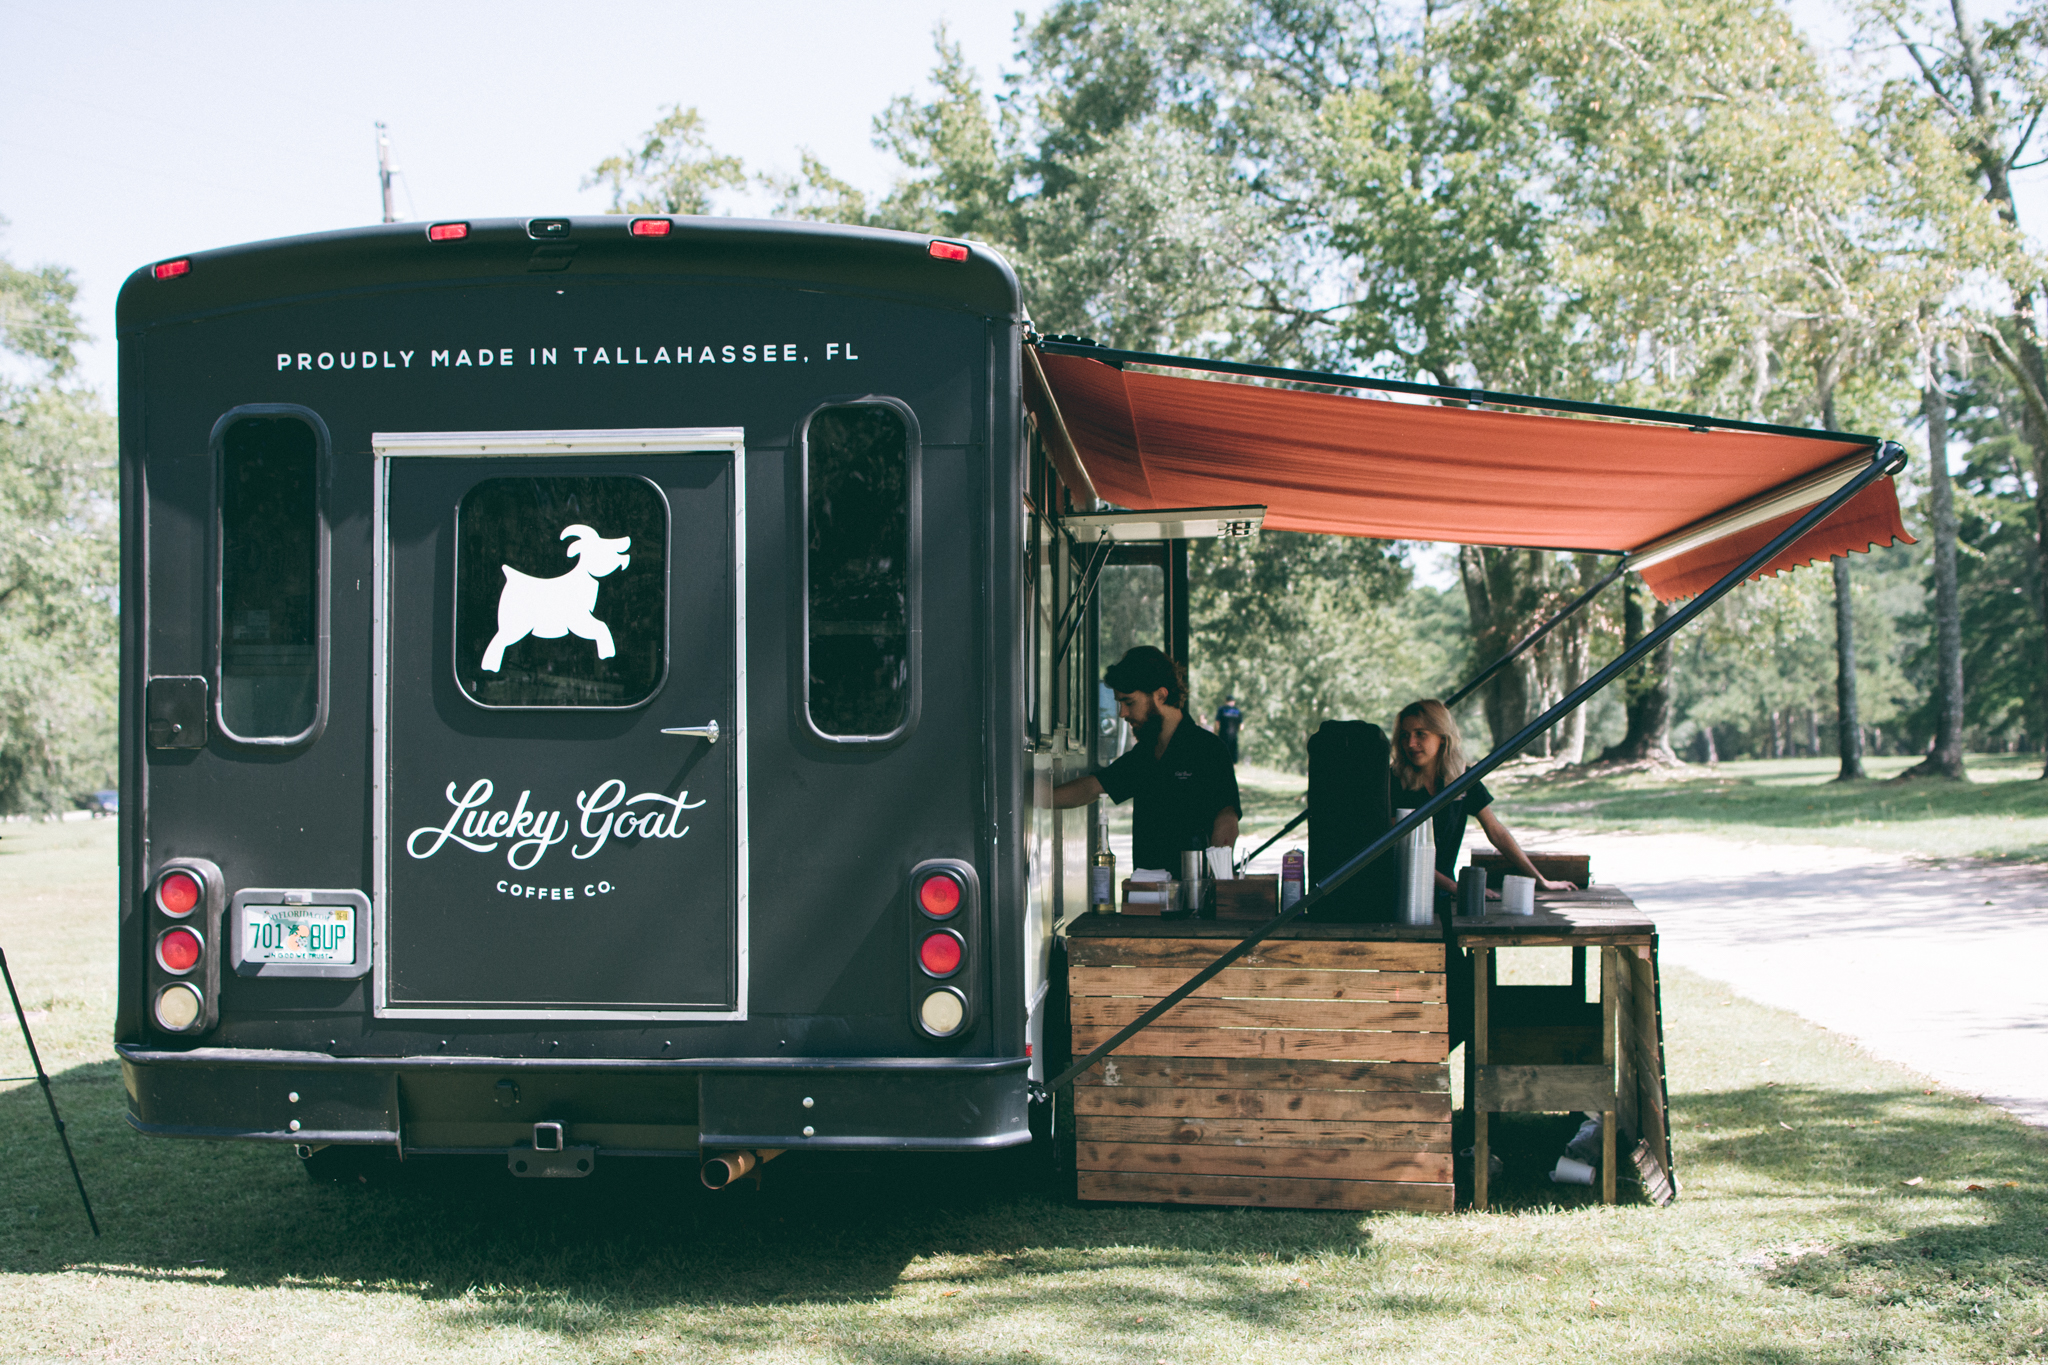 Lucky Goat serving coffee to Innovation Park of Tallahassee residents